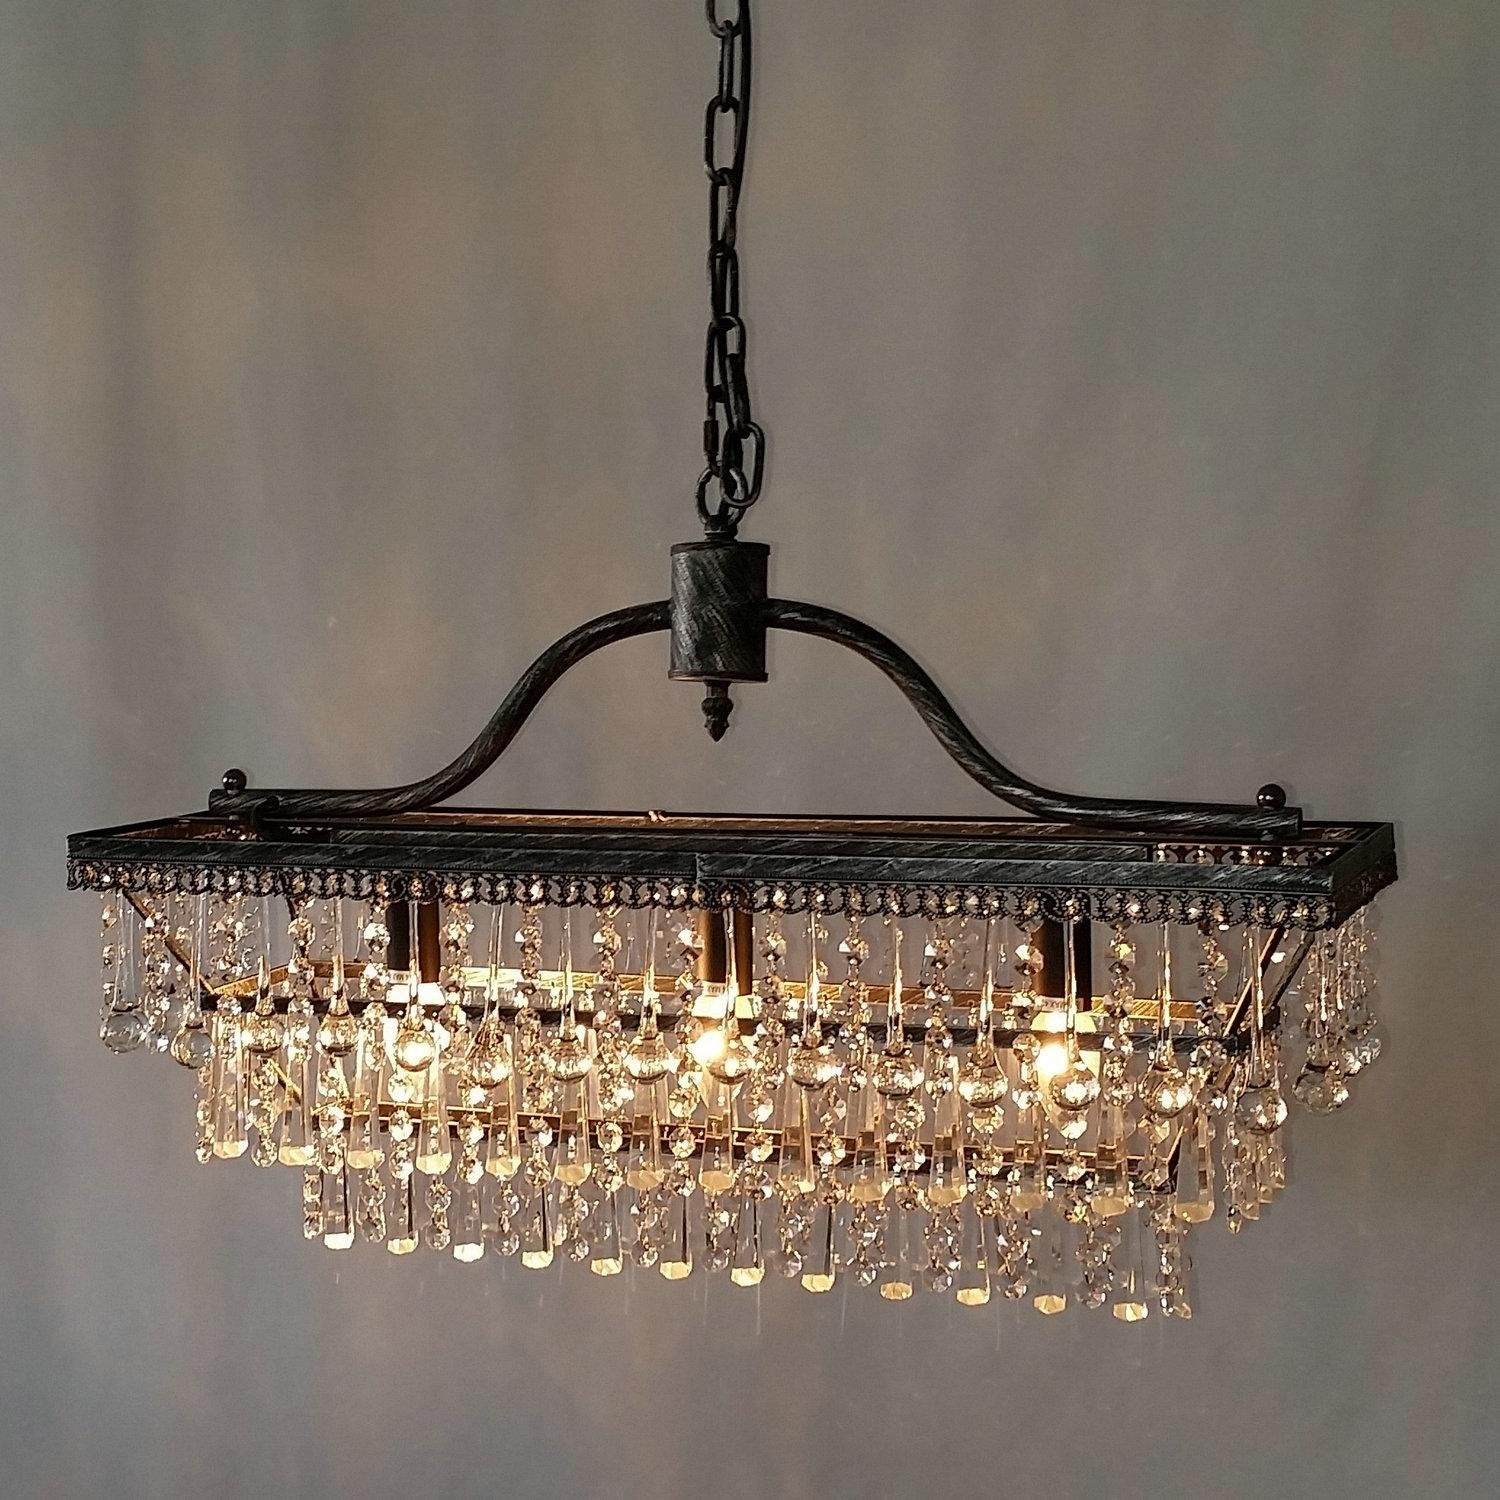 LightInTheBox Traditional Crystal Chandeliers Pendant Lights Ceiling Lamp Fixture